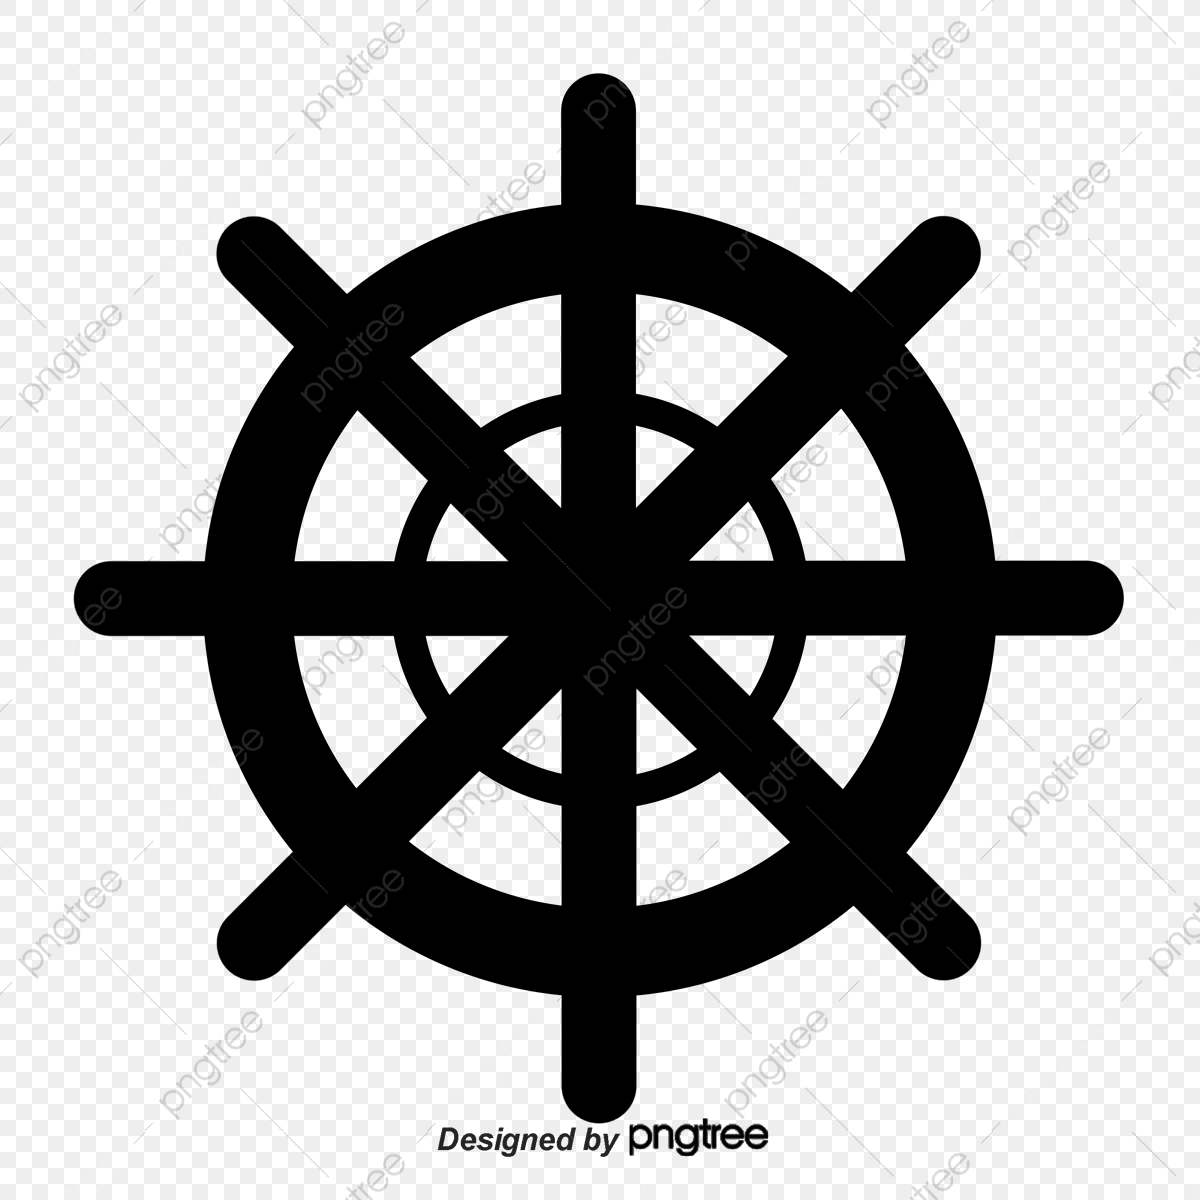 Nautical Elements Silhouette, Silhouette Vector, Navigation, Anchor.